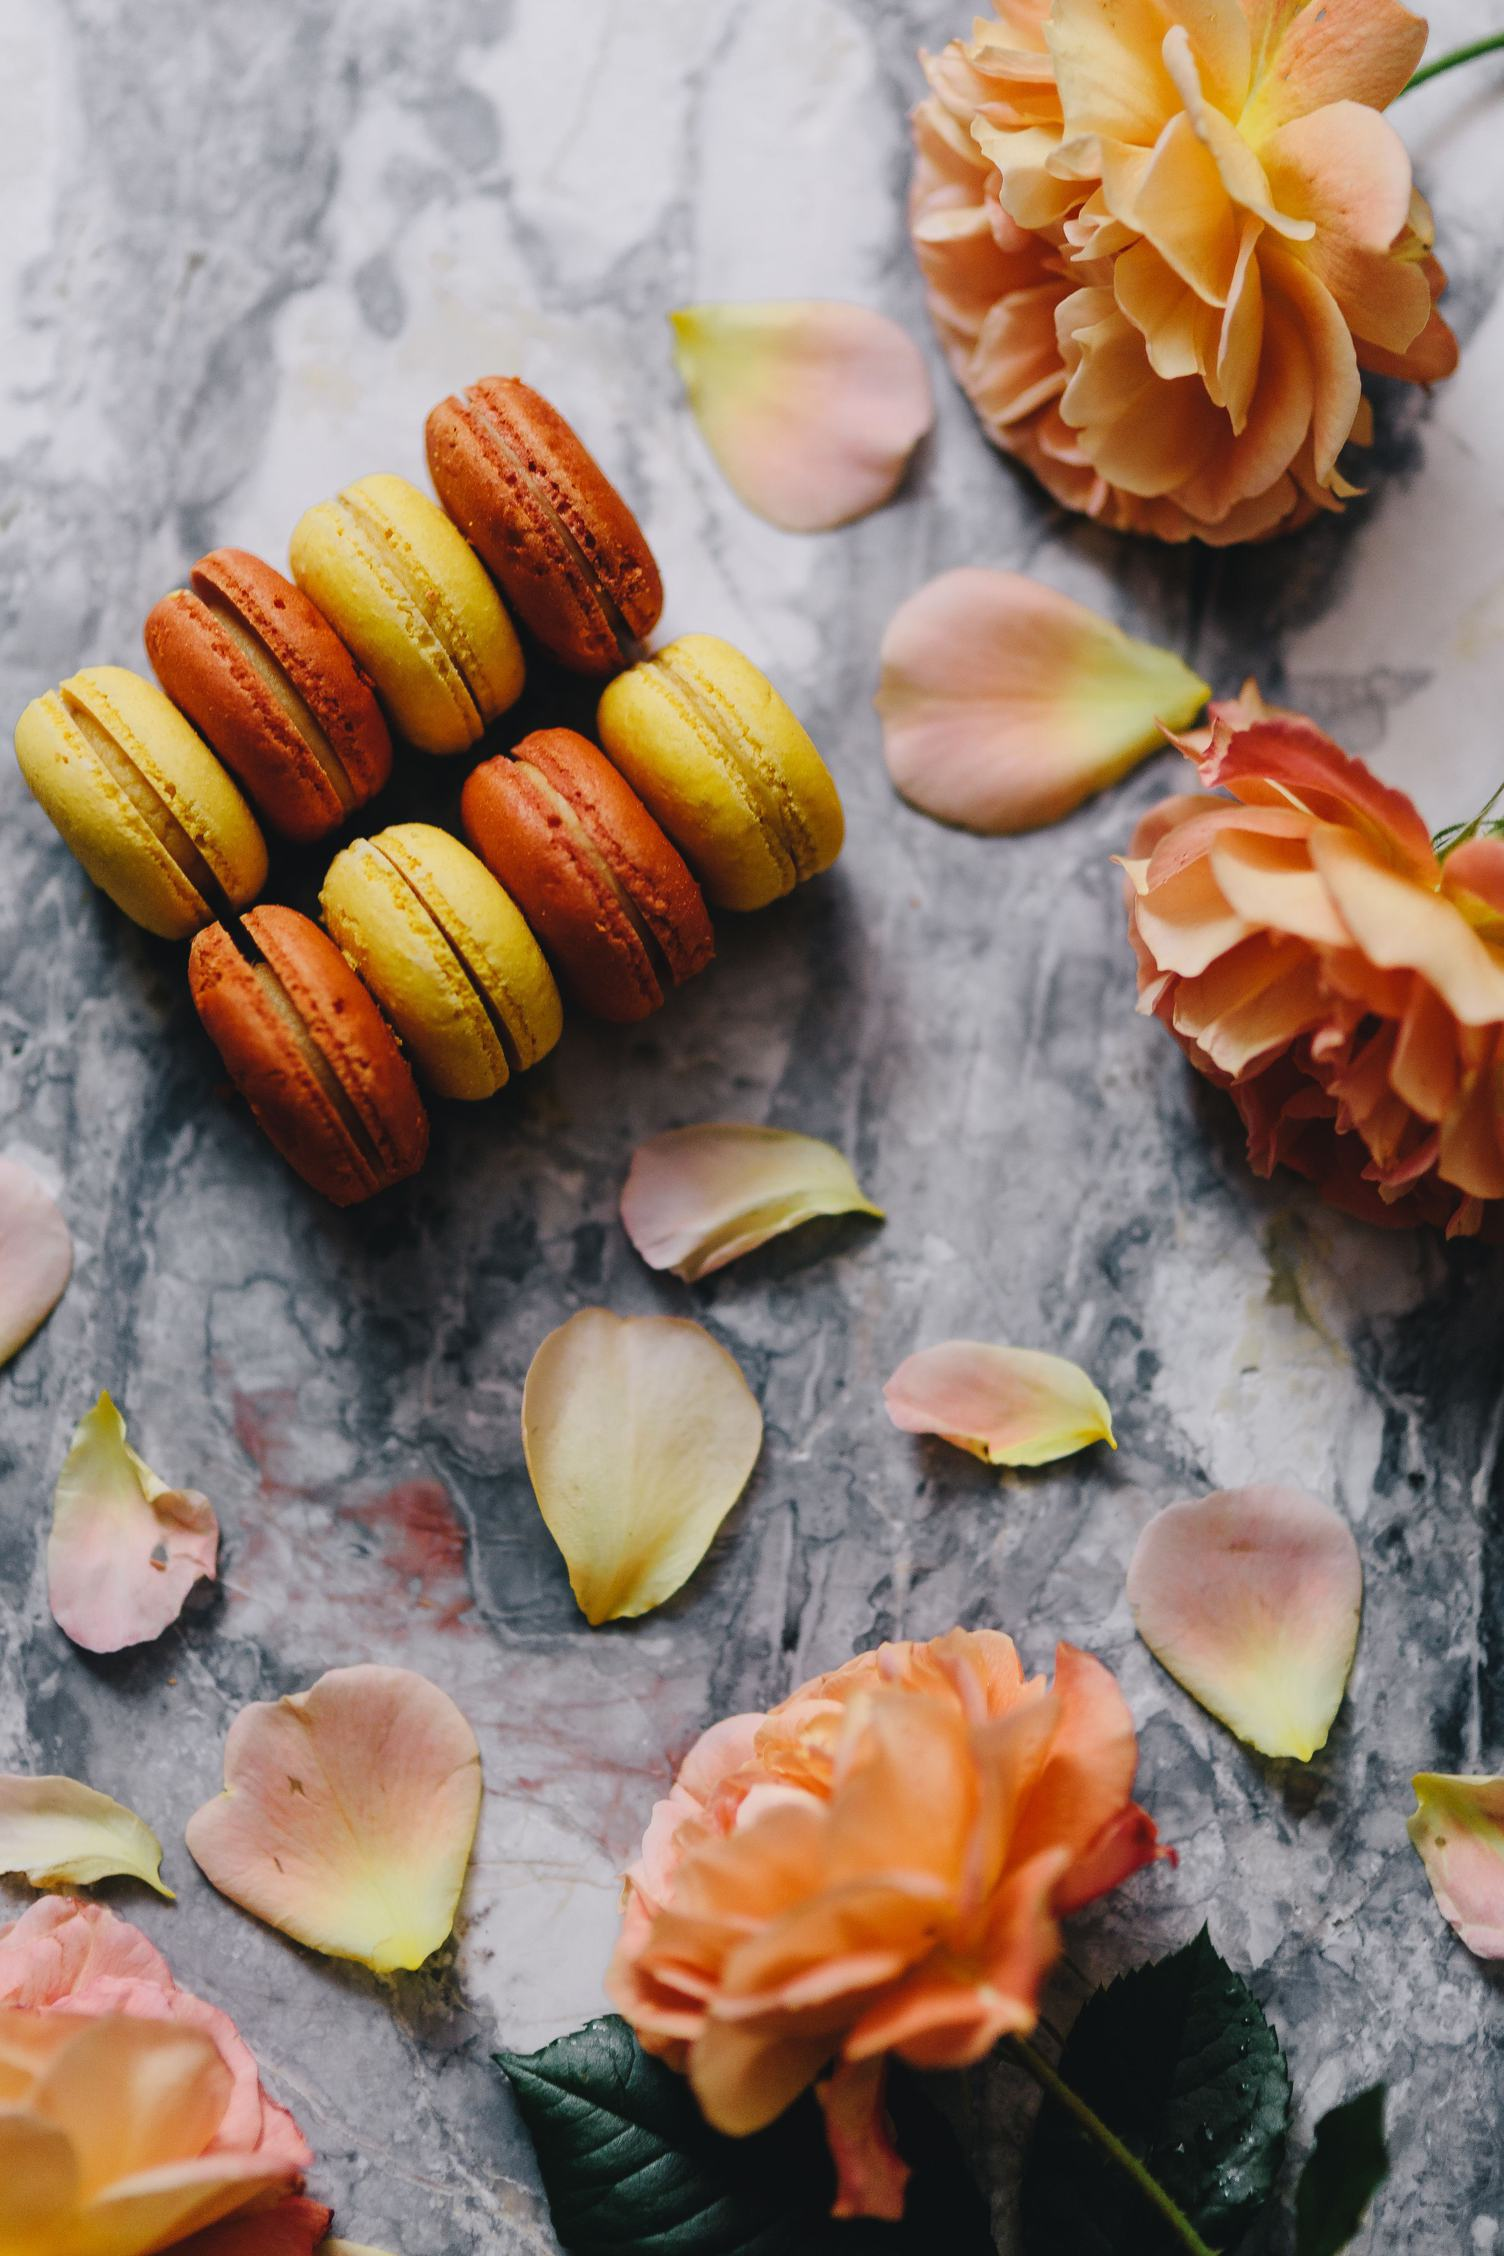 Orange and Yellow Macarons with Roses